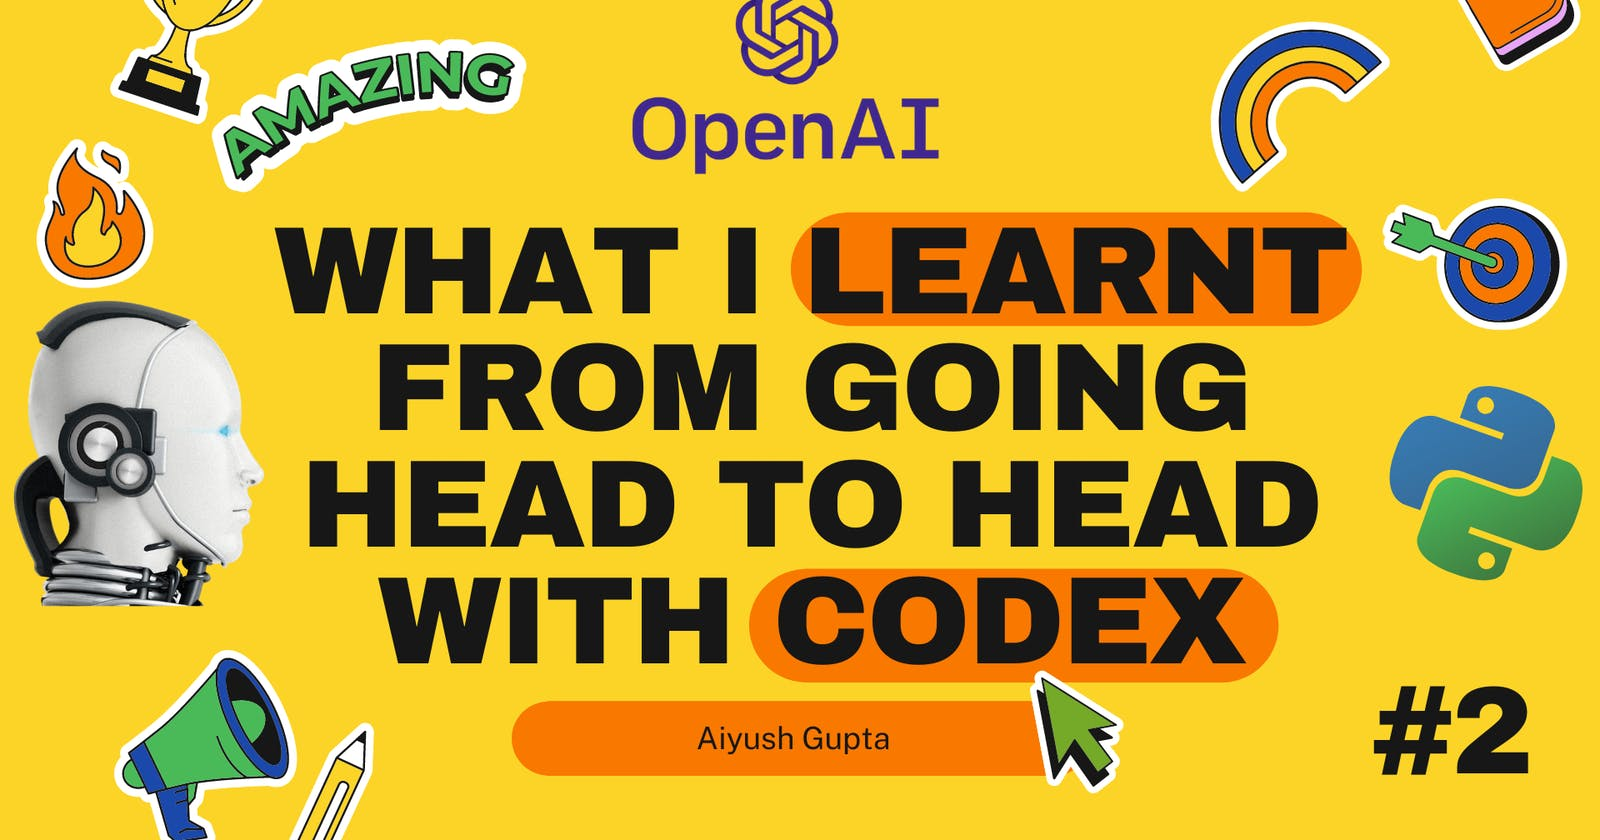 What I Learnt From Going Head to Head with Codex